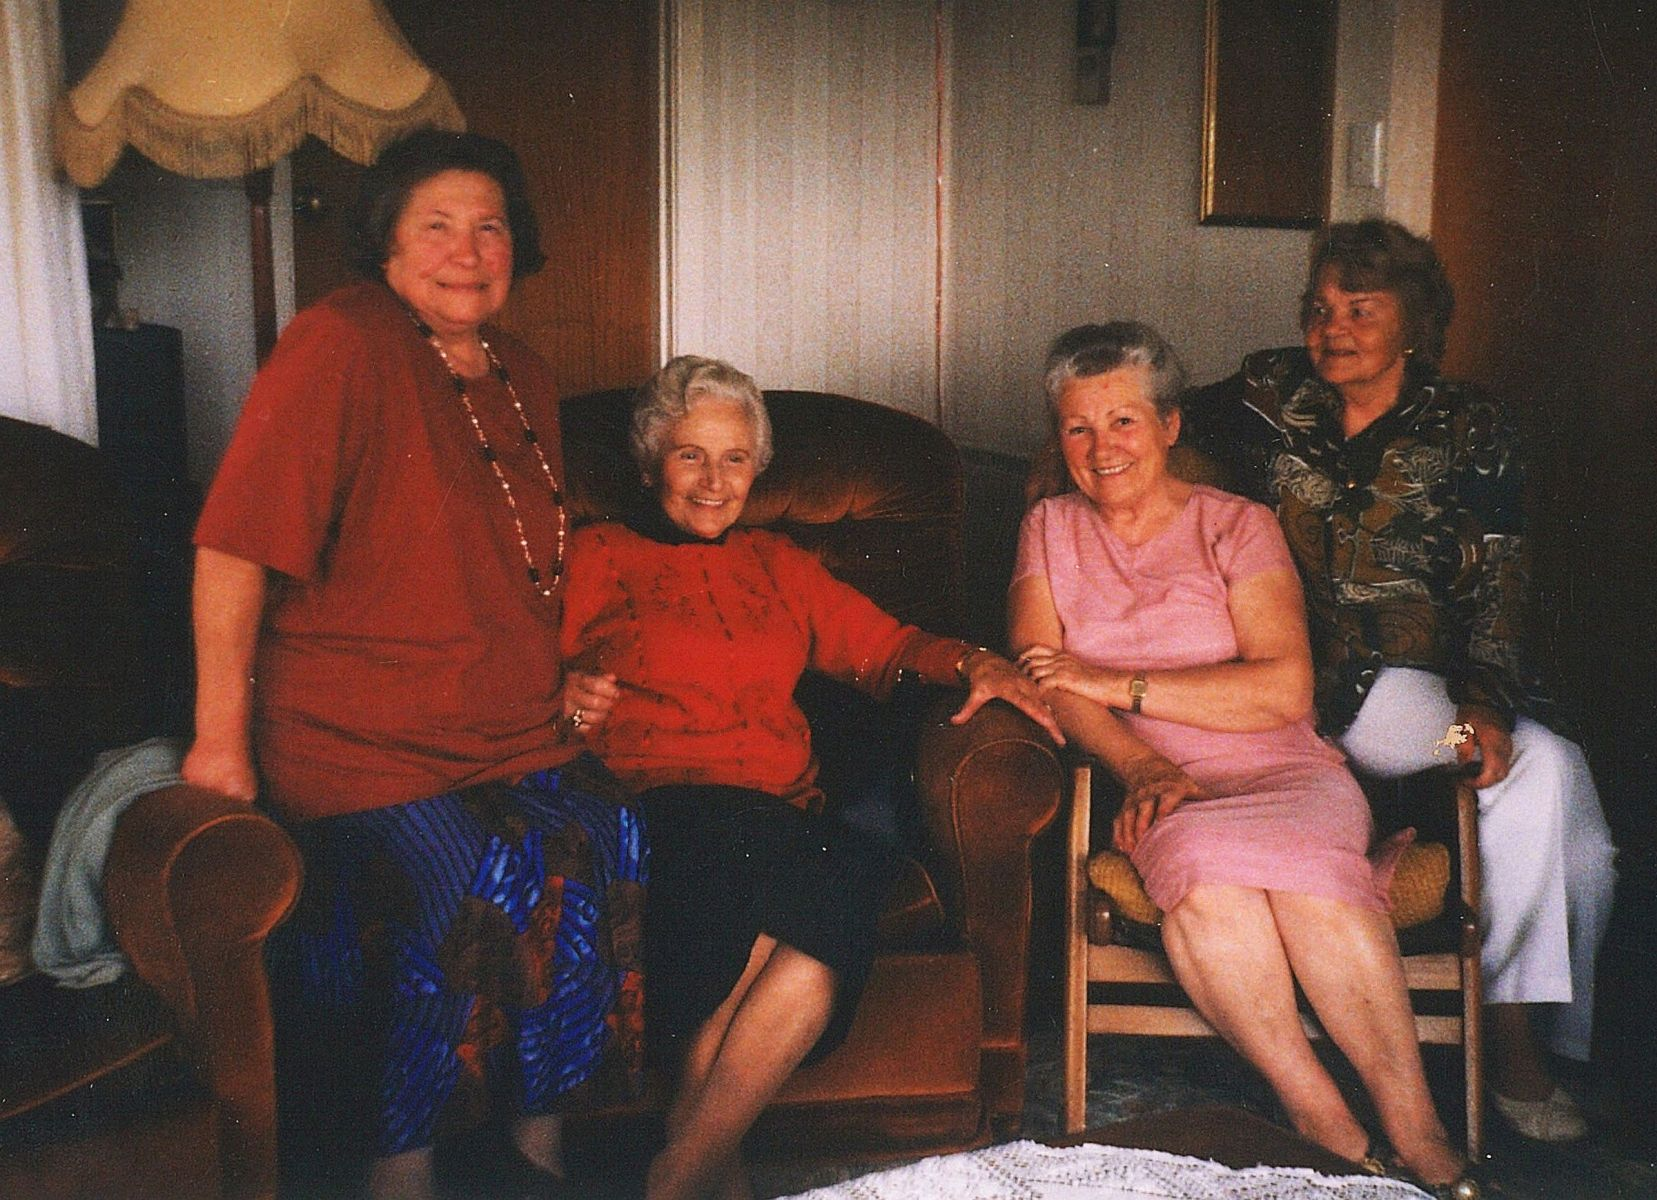 Four  middle-aged women in a lounge, the middle two sitting on chairs and the outer two perched on the armrests. All are smiling.